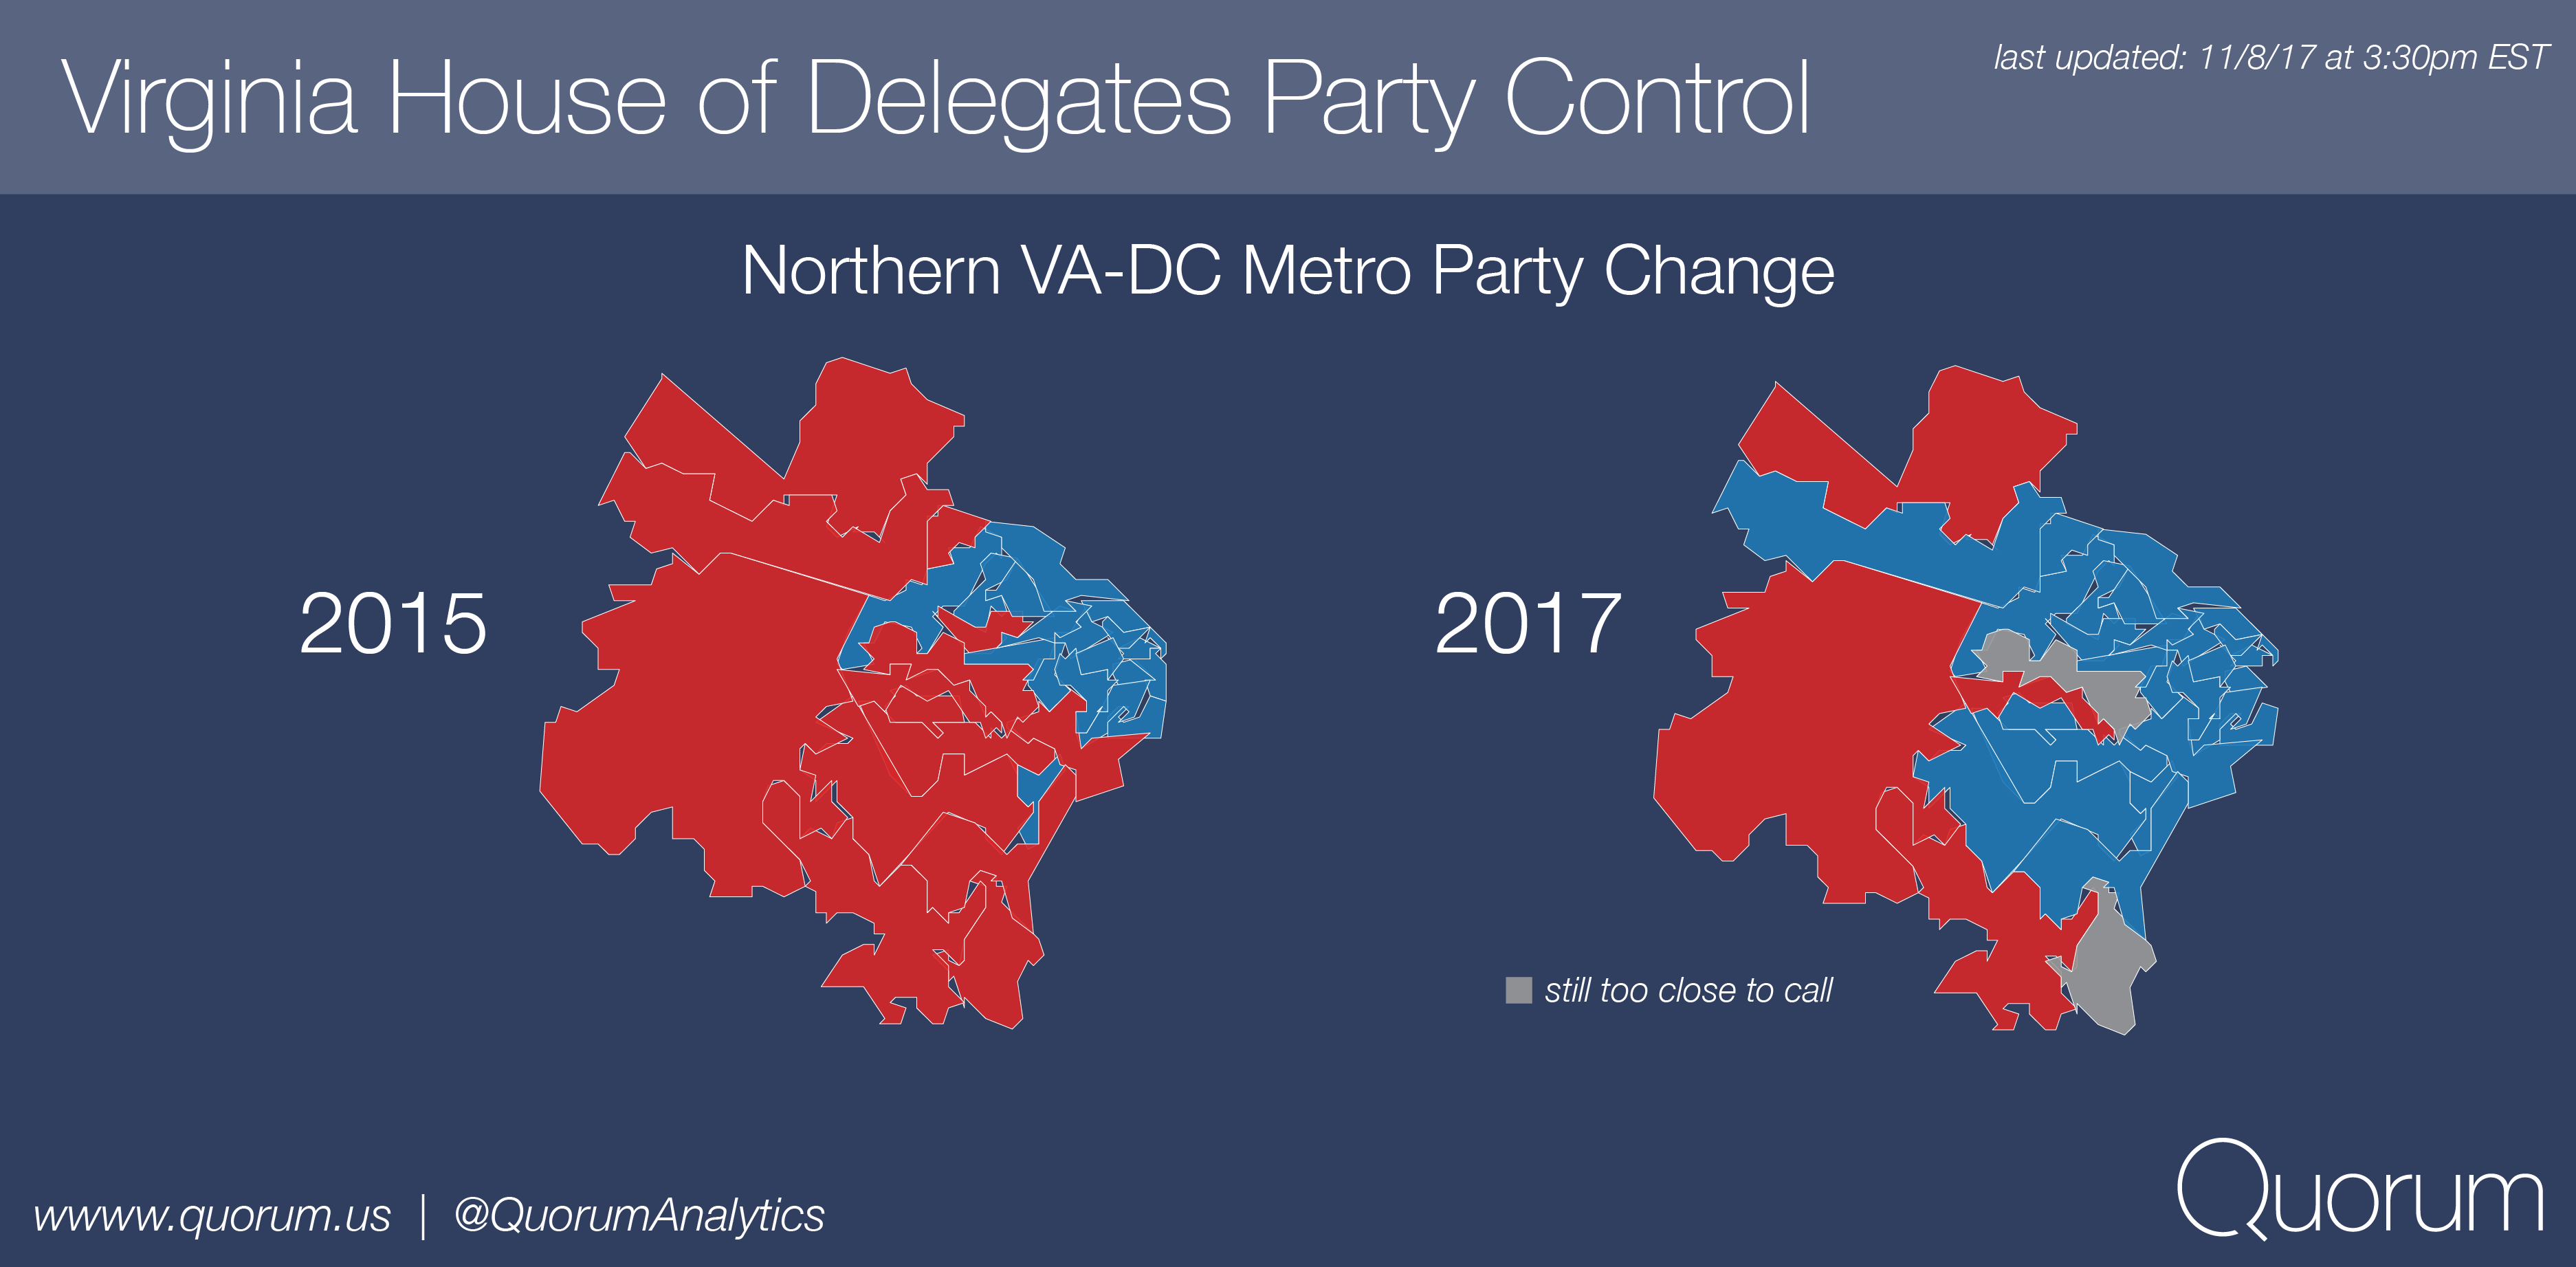 Virginia House of Delegates Party Control